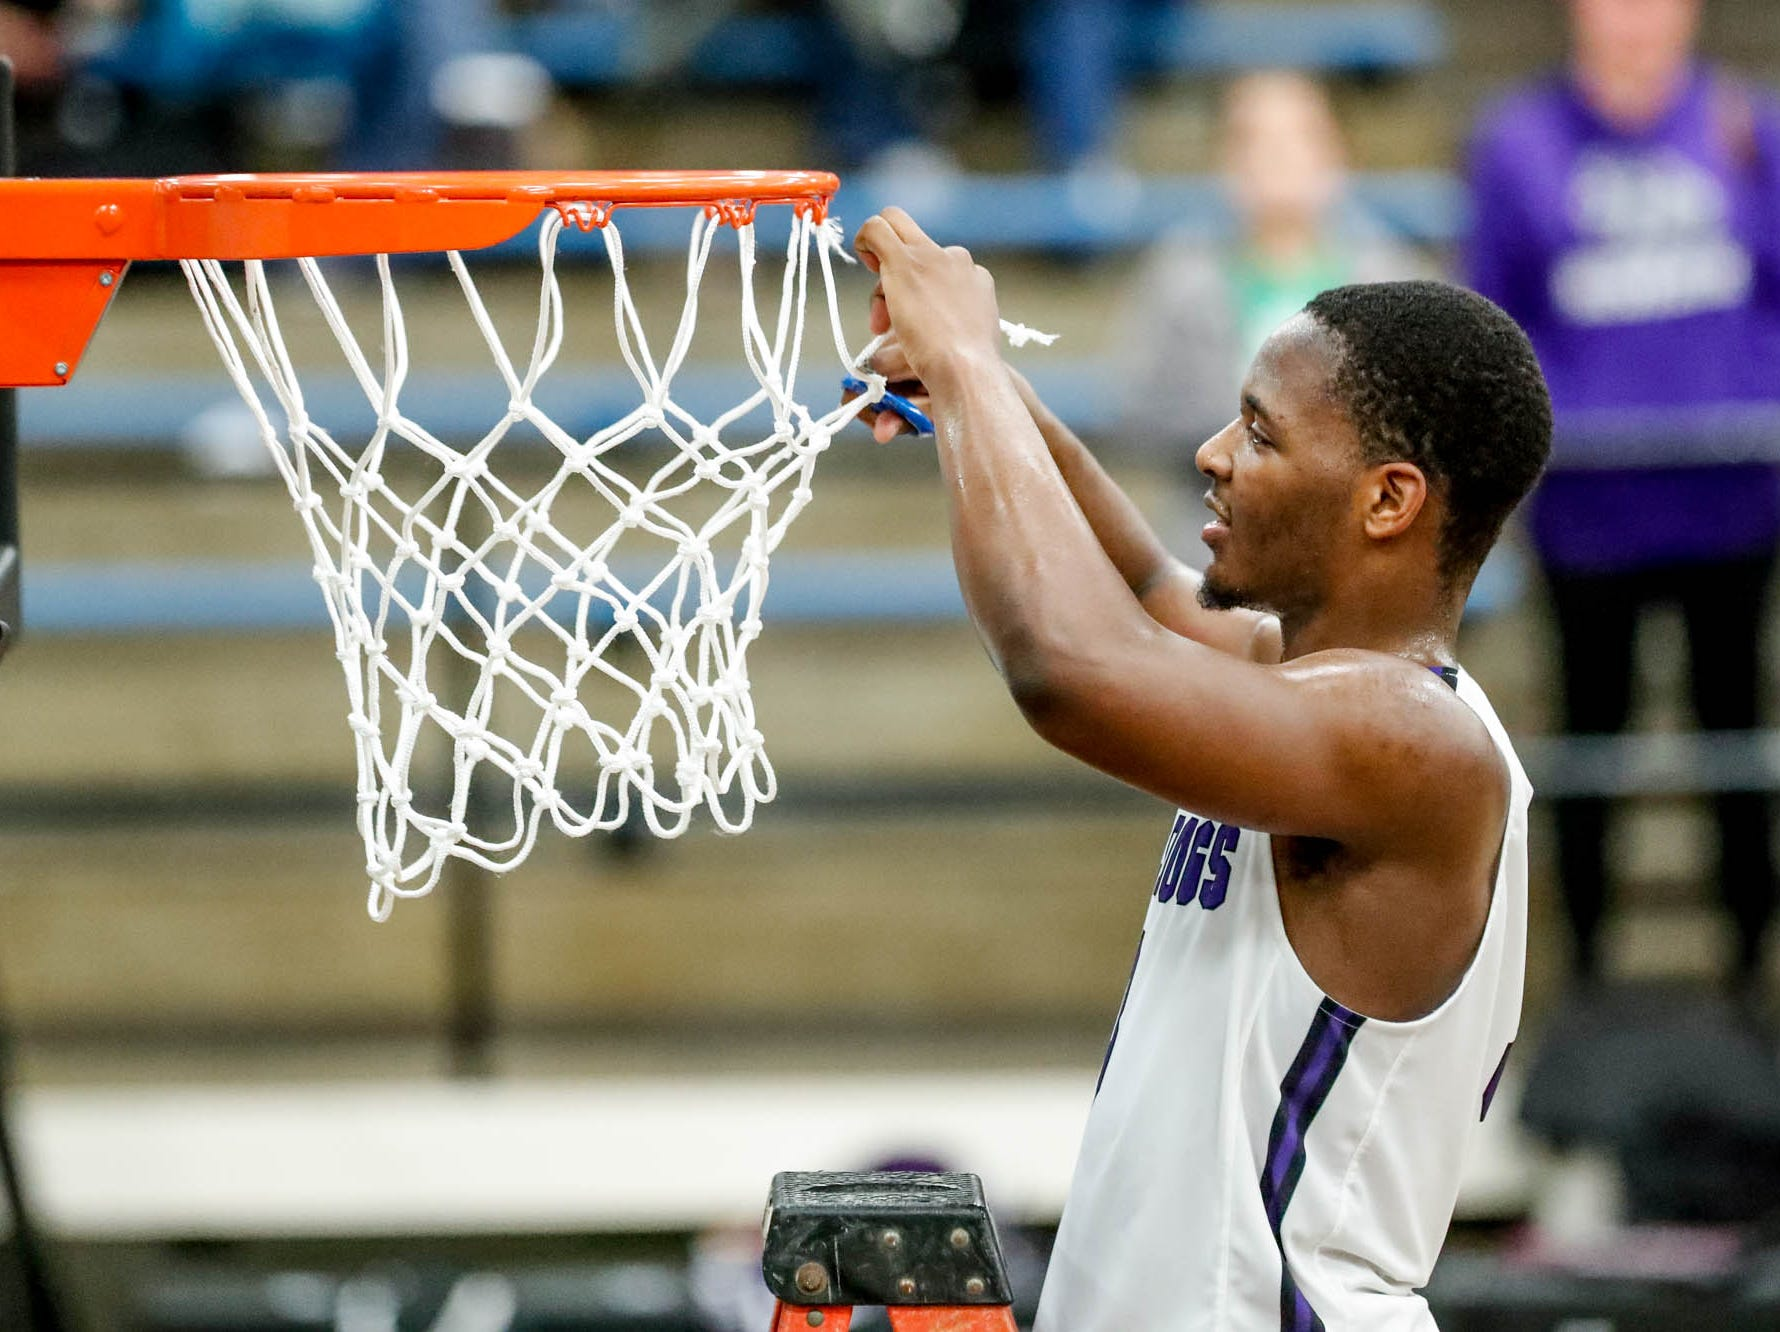 Brownsburg High School's guard Cameron Alford (3), cuts pieces of the net after winning the 2019 Hendricks County Basketball Tournament game between the Avon High School boys varsity basketball team and Brownsburg High School, held at Cascade High School on Saturday, Jan. 5, 2019.